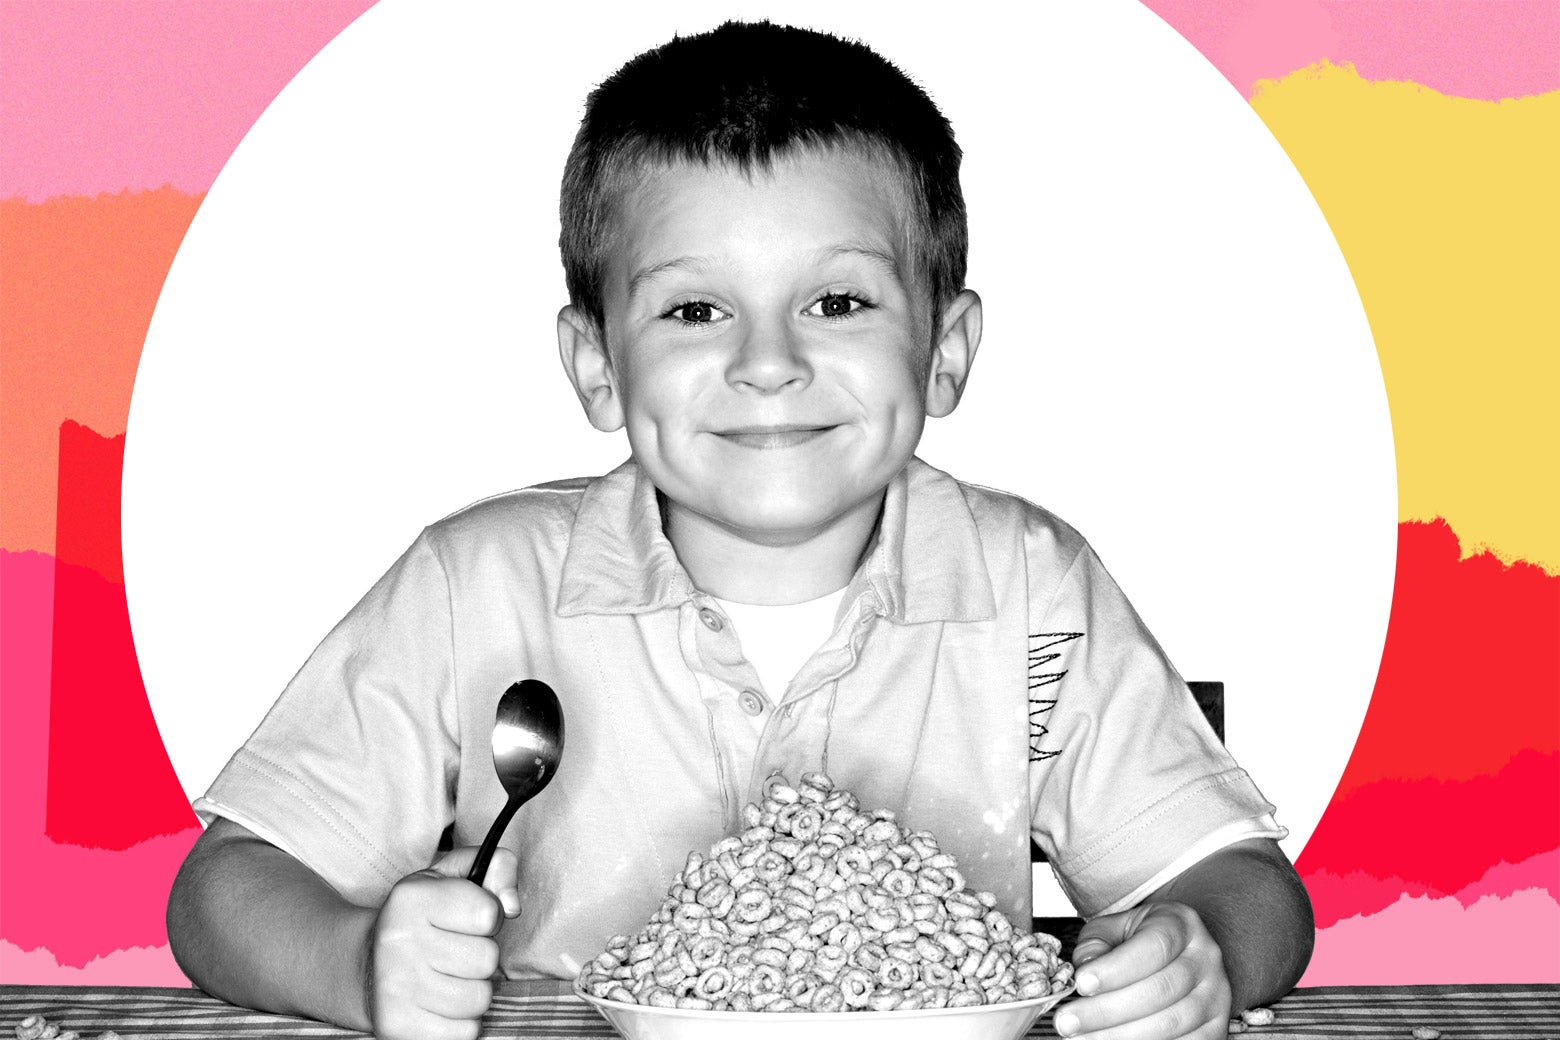 A young boy with a bowl of cereal.